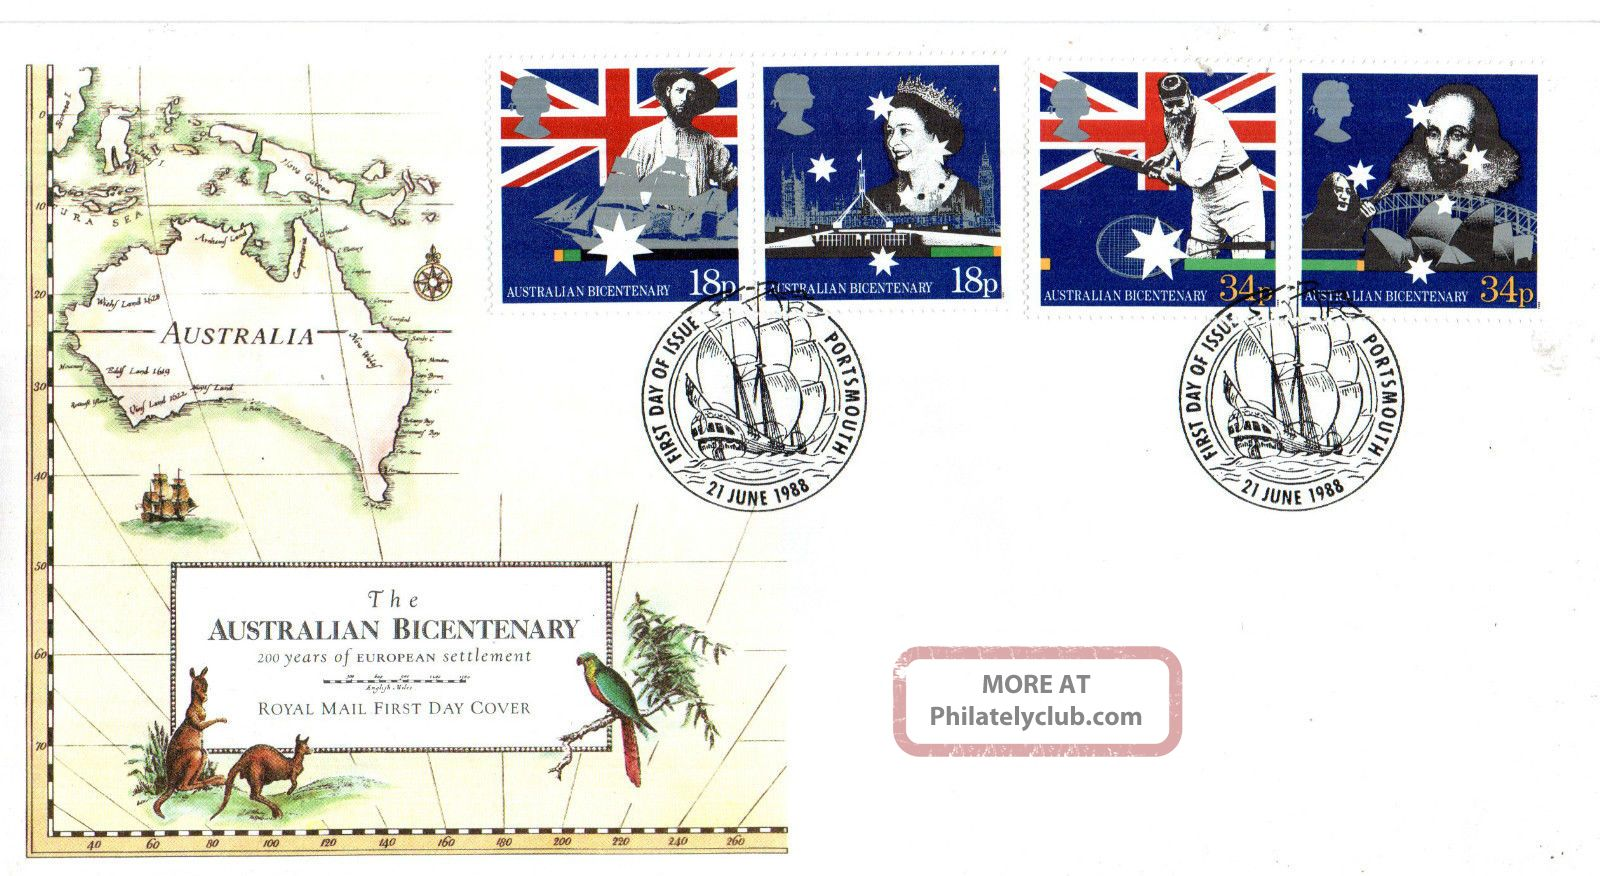 21 June 1988 Australian Bicentenary Unadd Rm First Day Cover Portsmouth Shs Topical Stamps photo